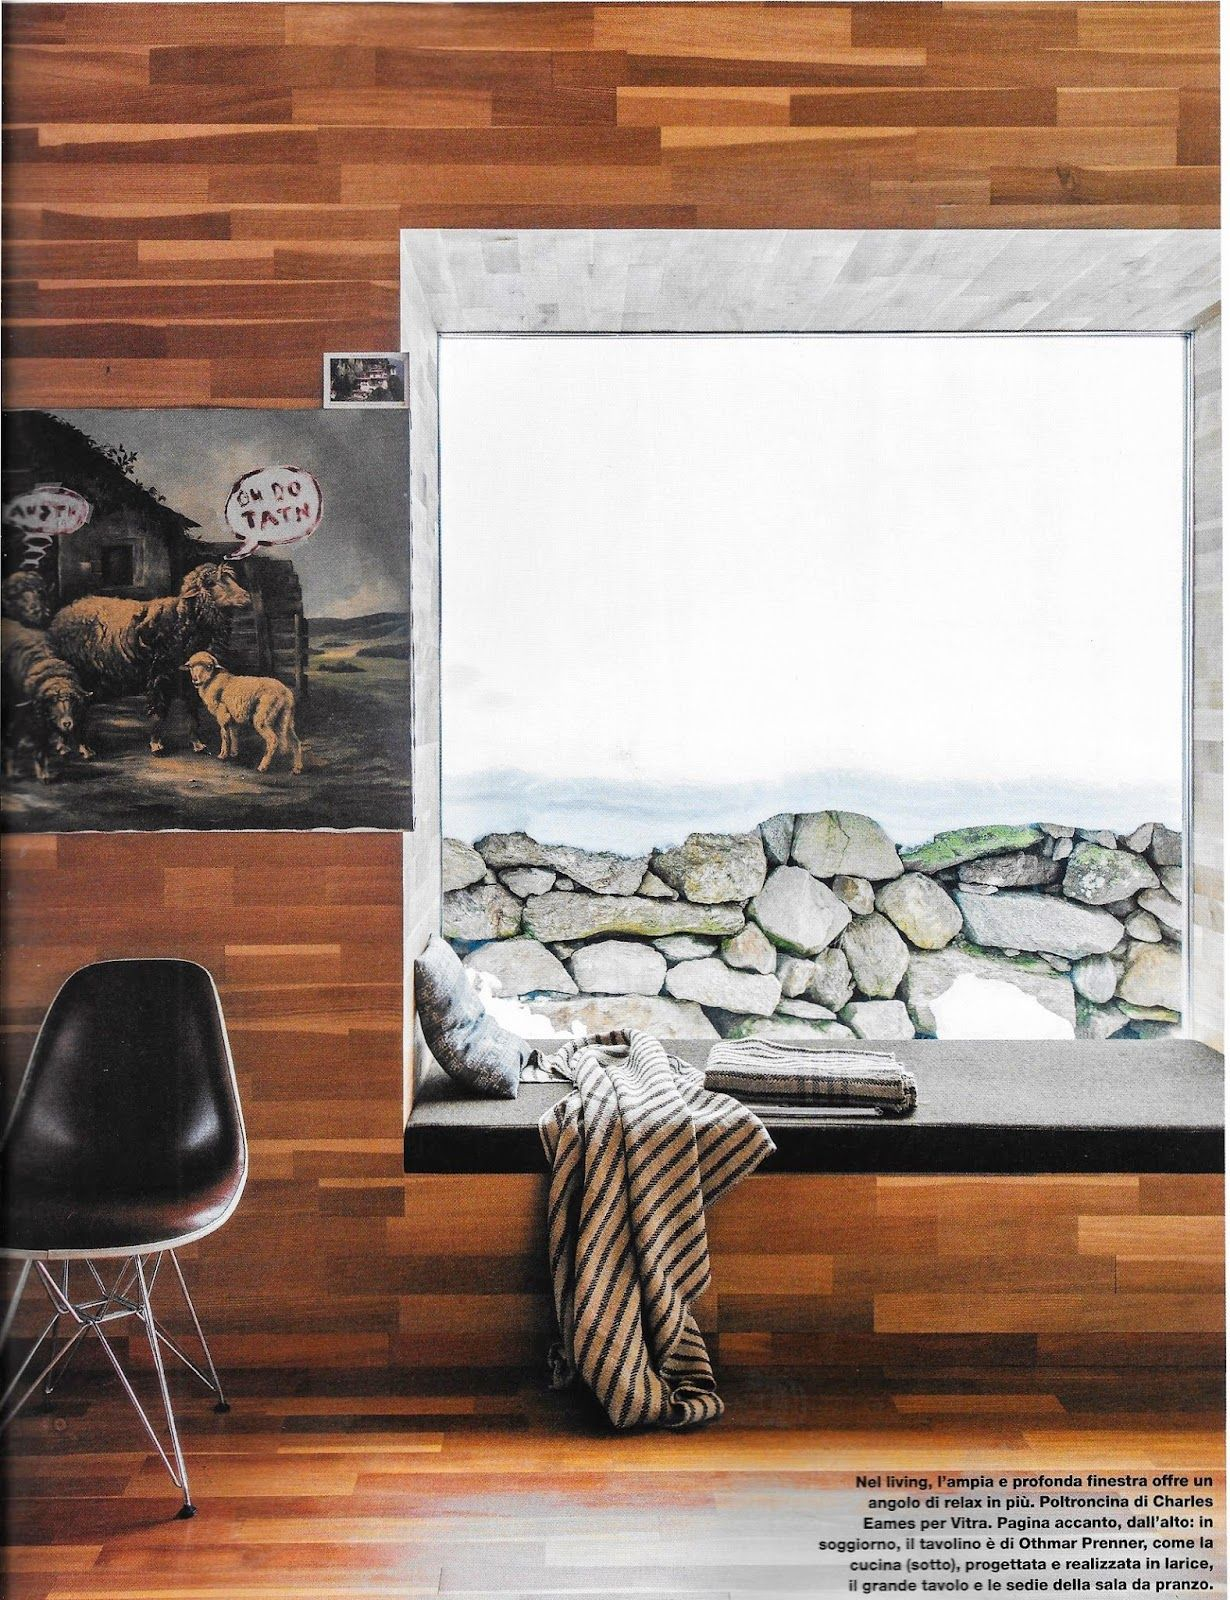 The perfect mountain retreat Window seat with view of Endkopf peak in the Tyrolean Alps